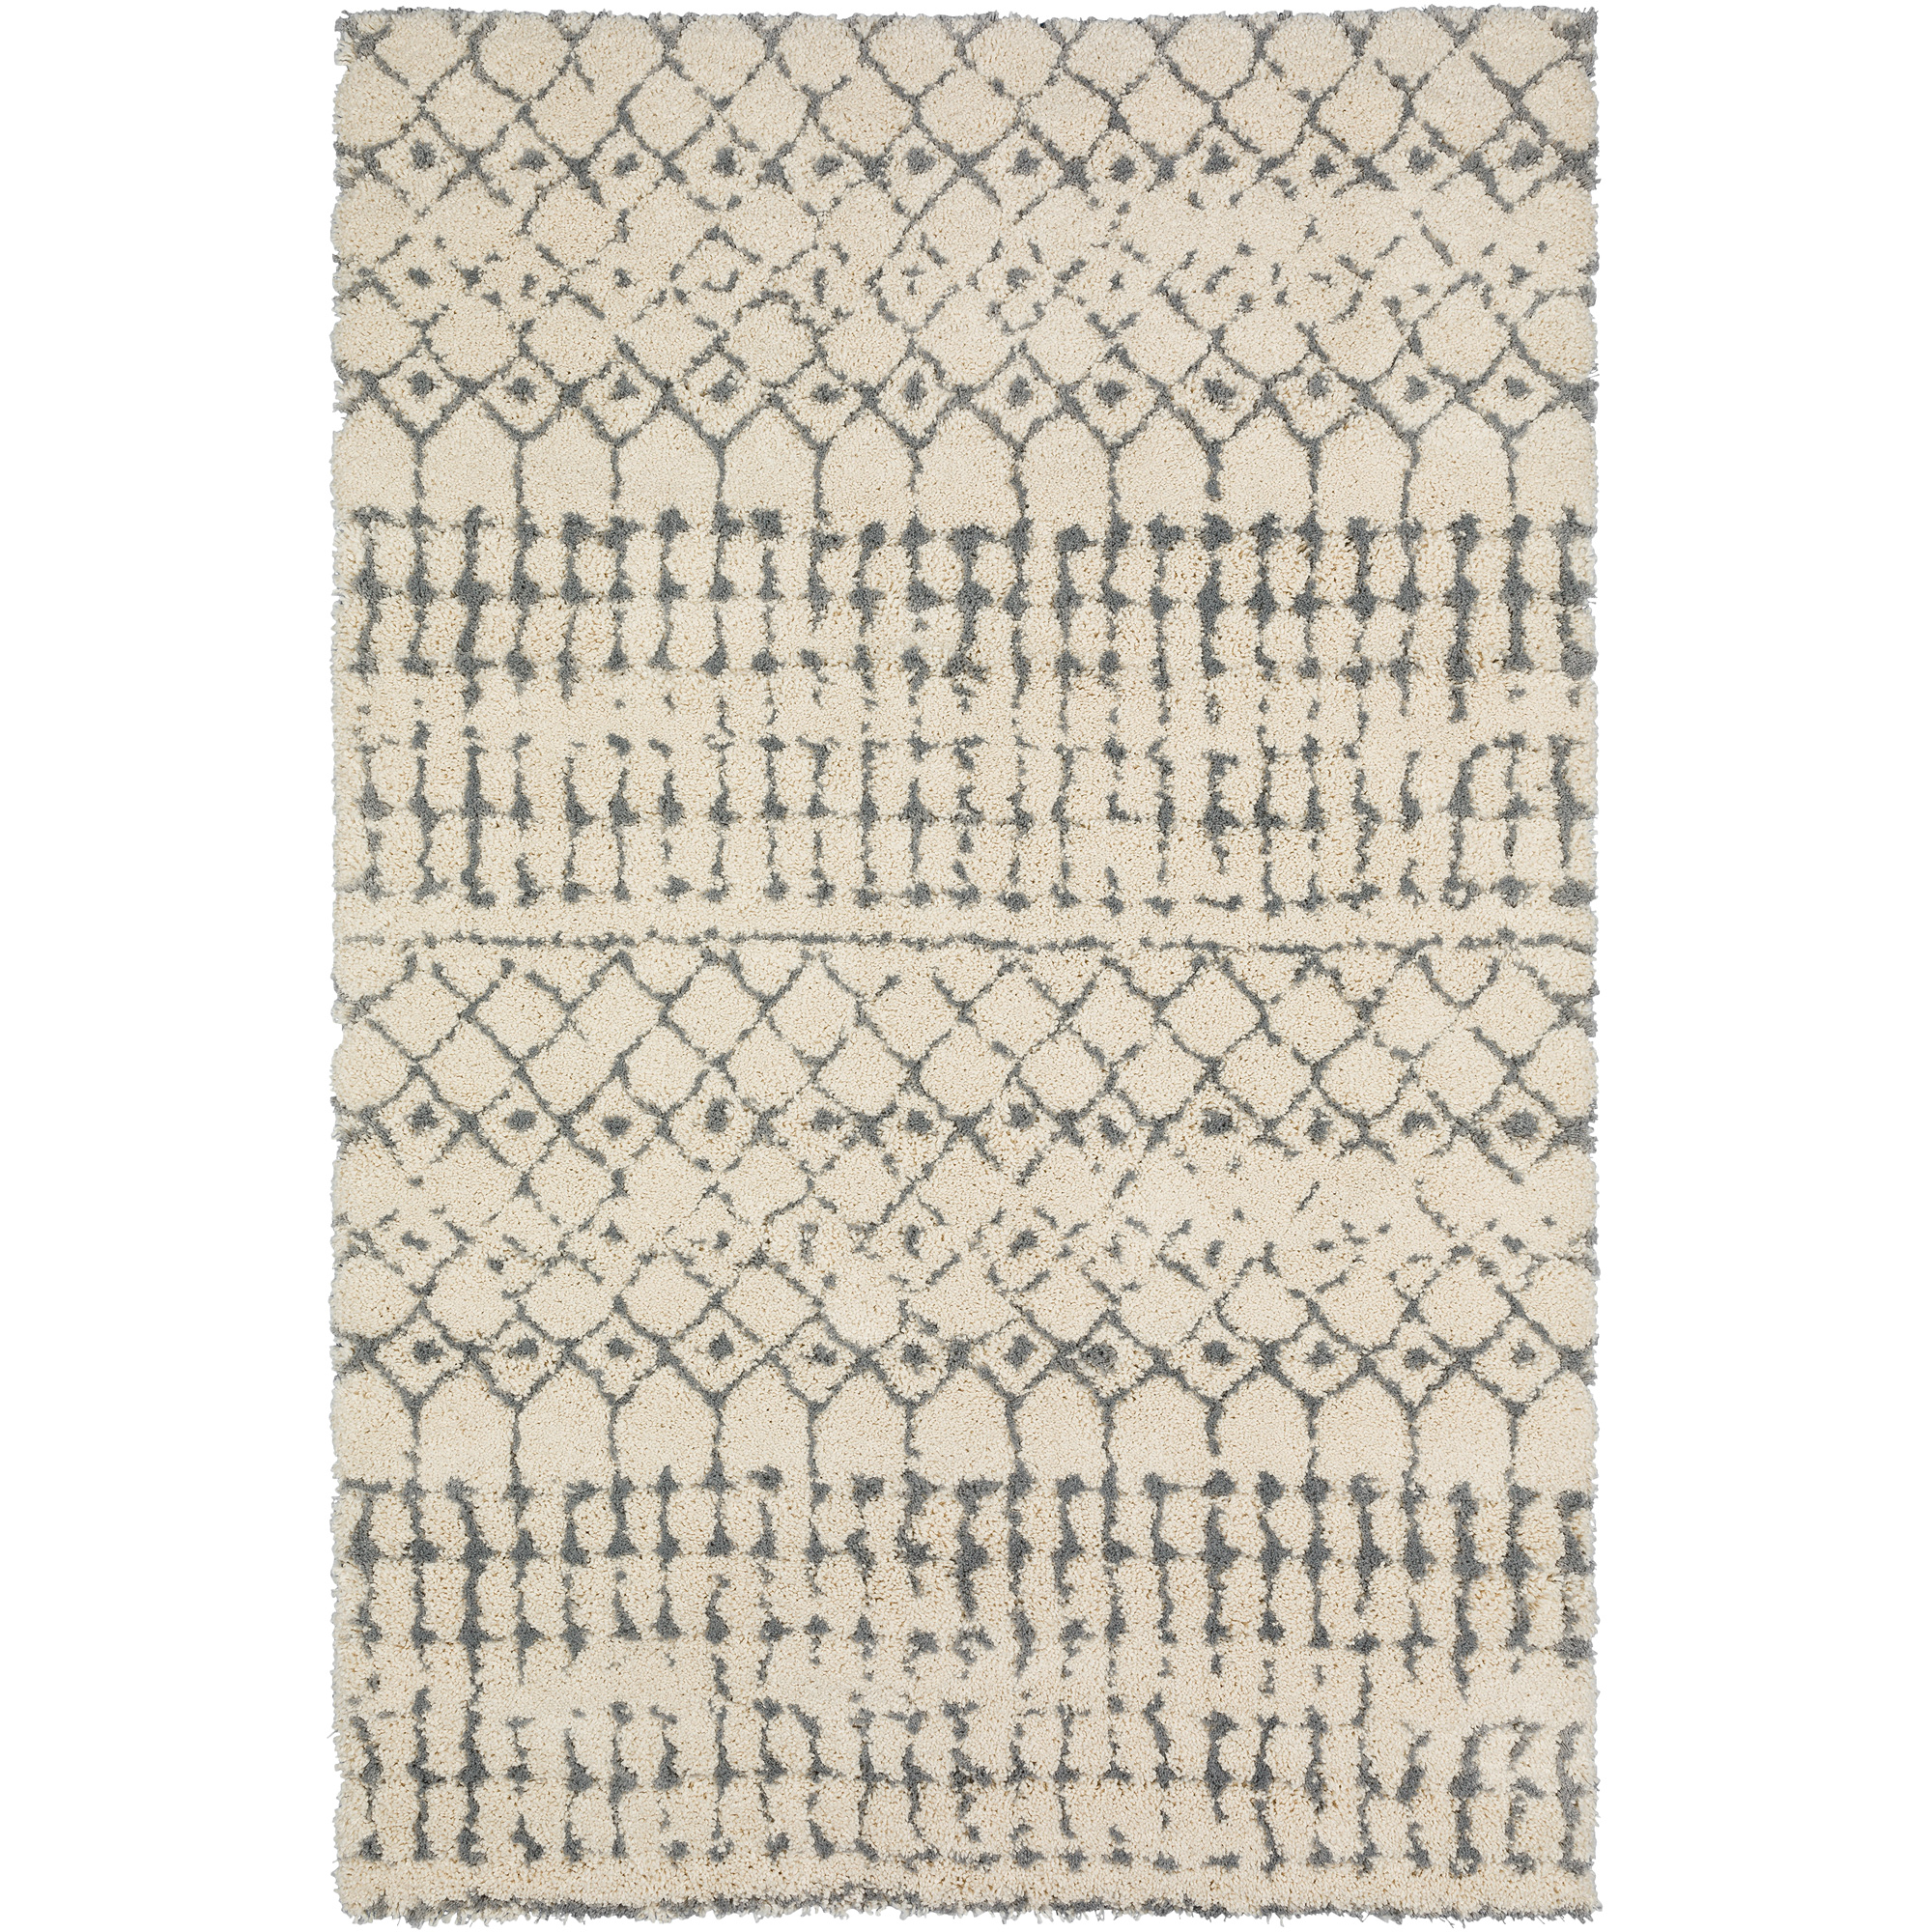 Dalyn Rug Company | Marquee Ivory And Metal 9x13 Area Rug